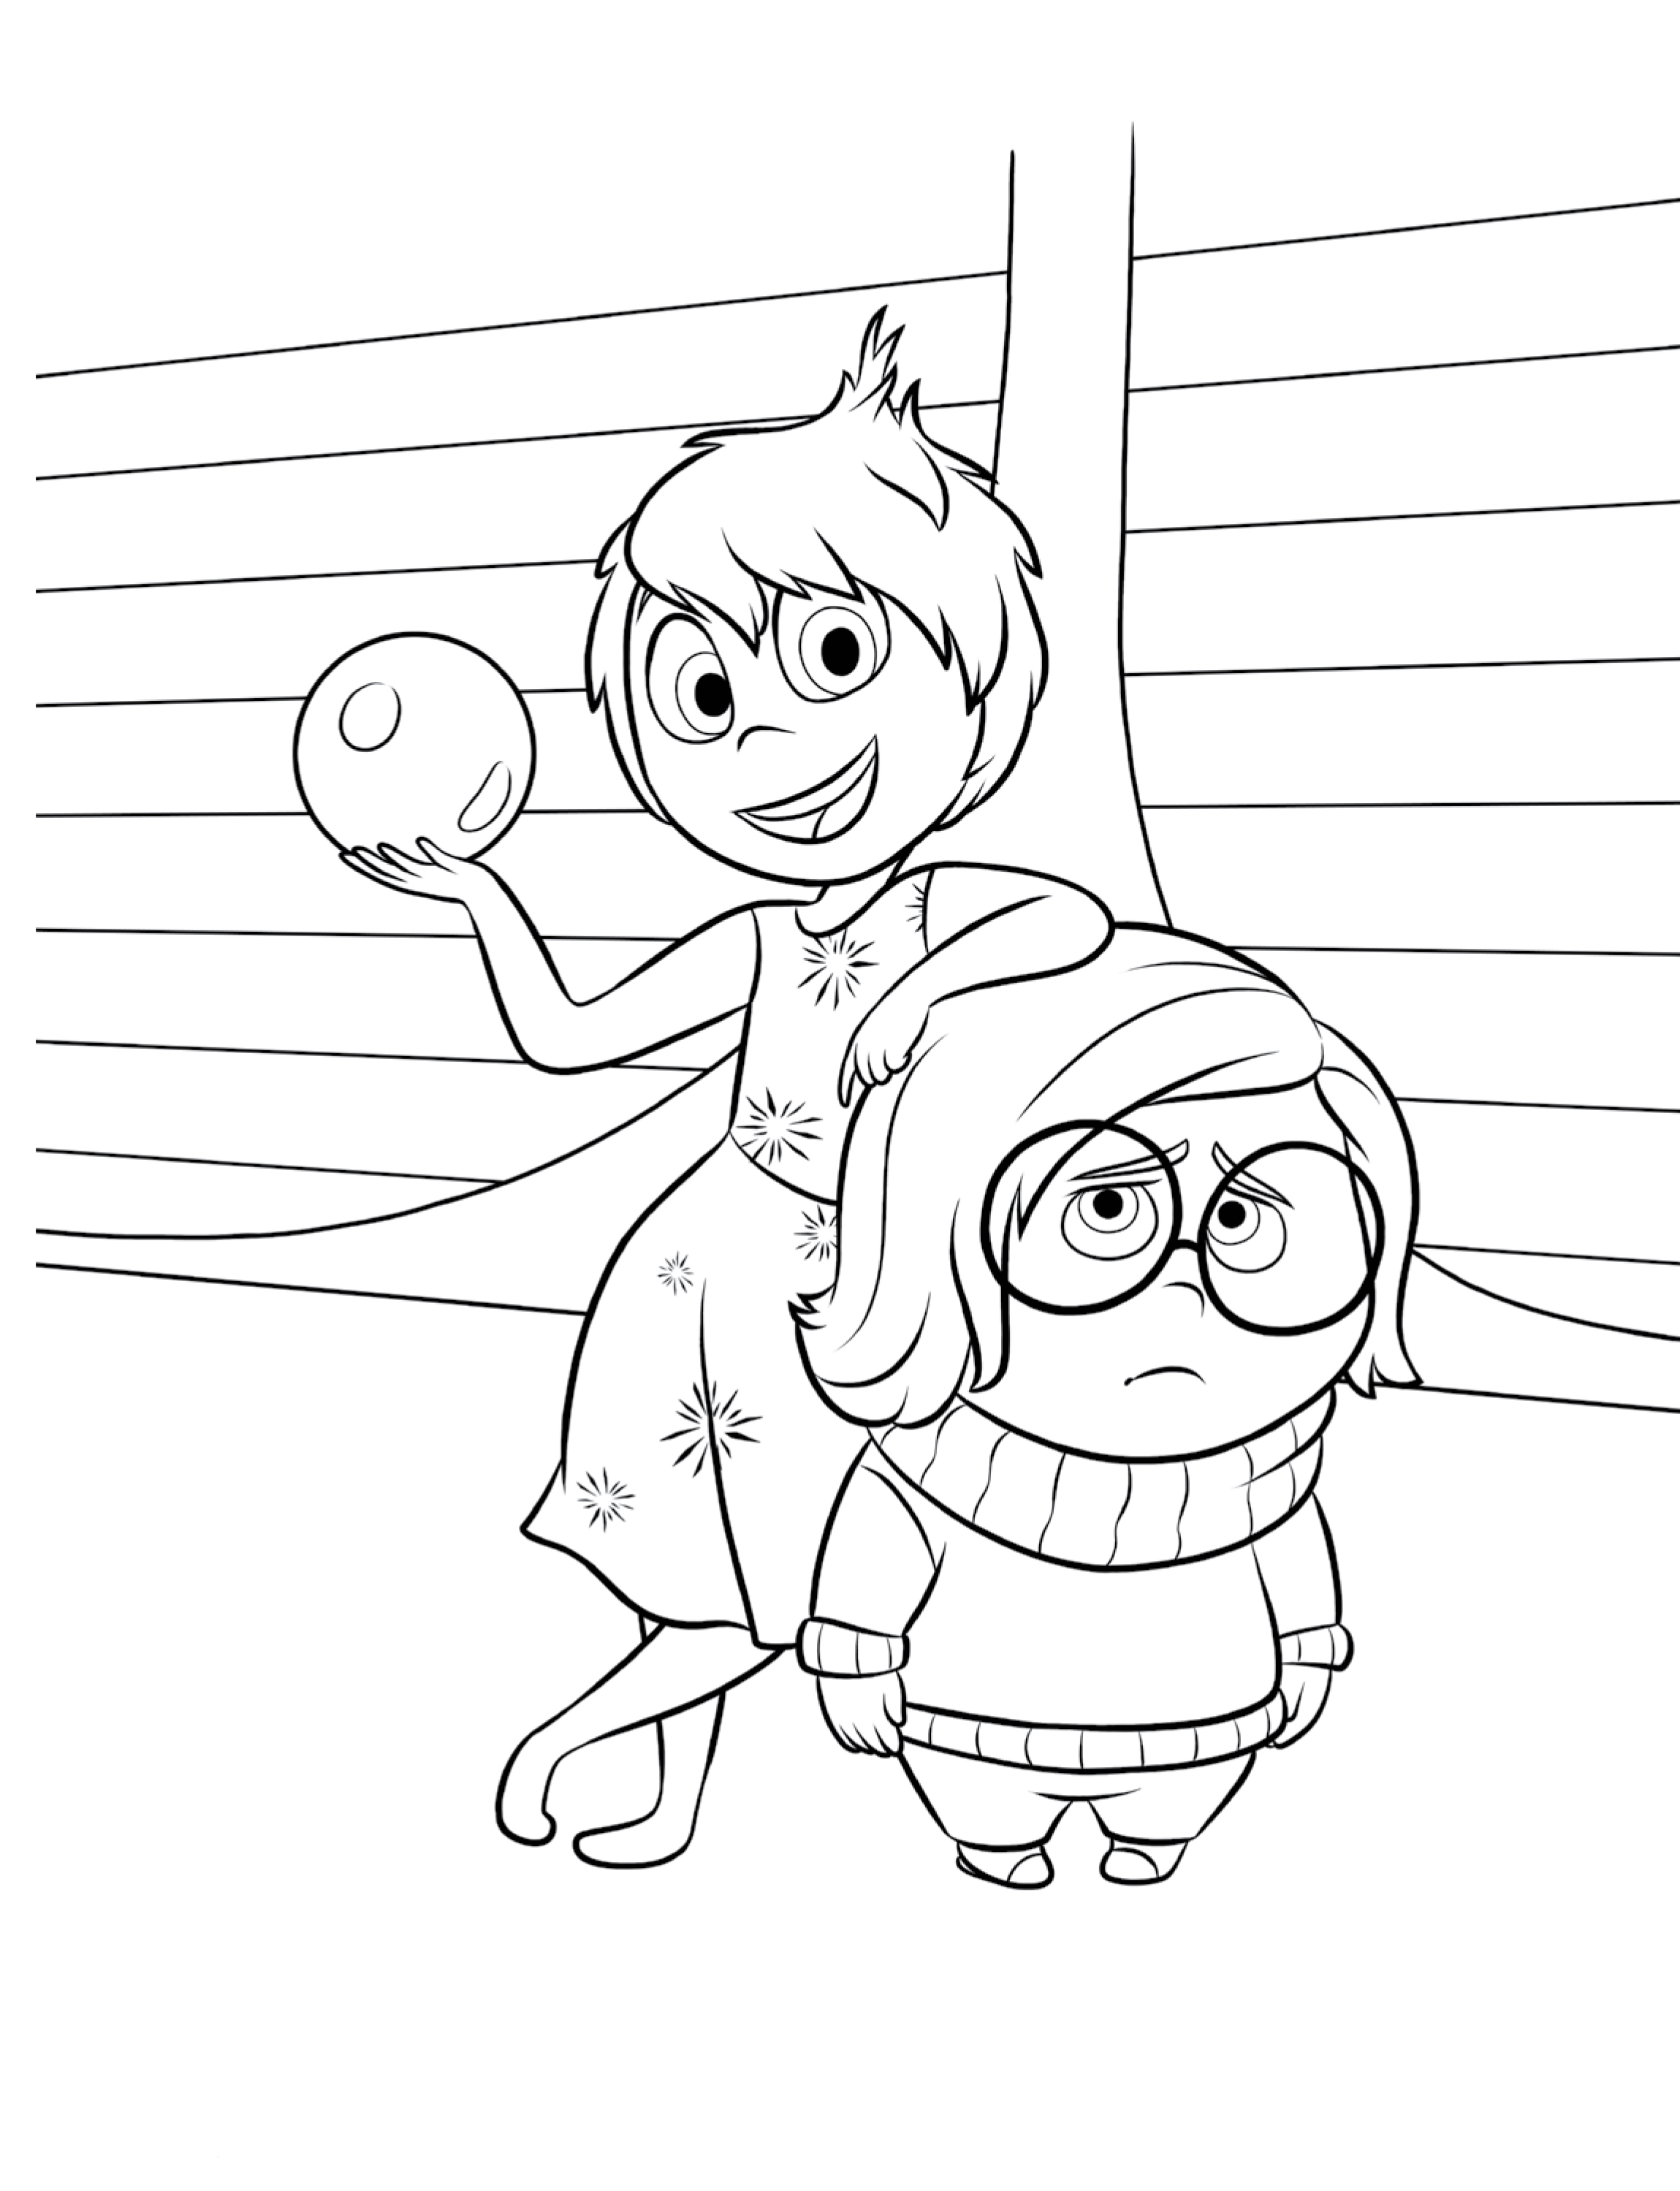 print out coloring pages inside out coloring pages best coloring pages for kids print coloring out pages